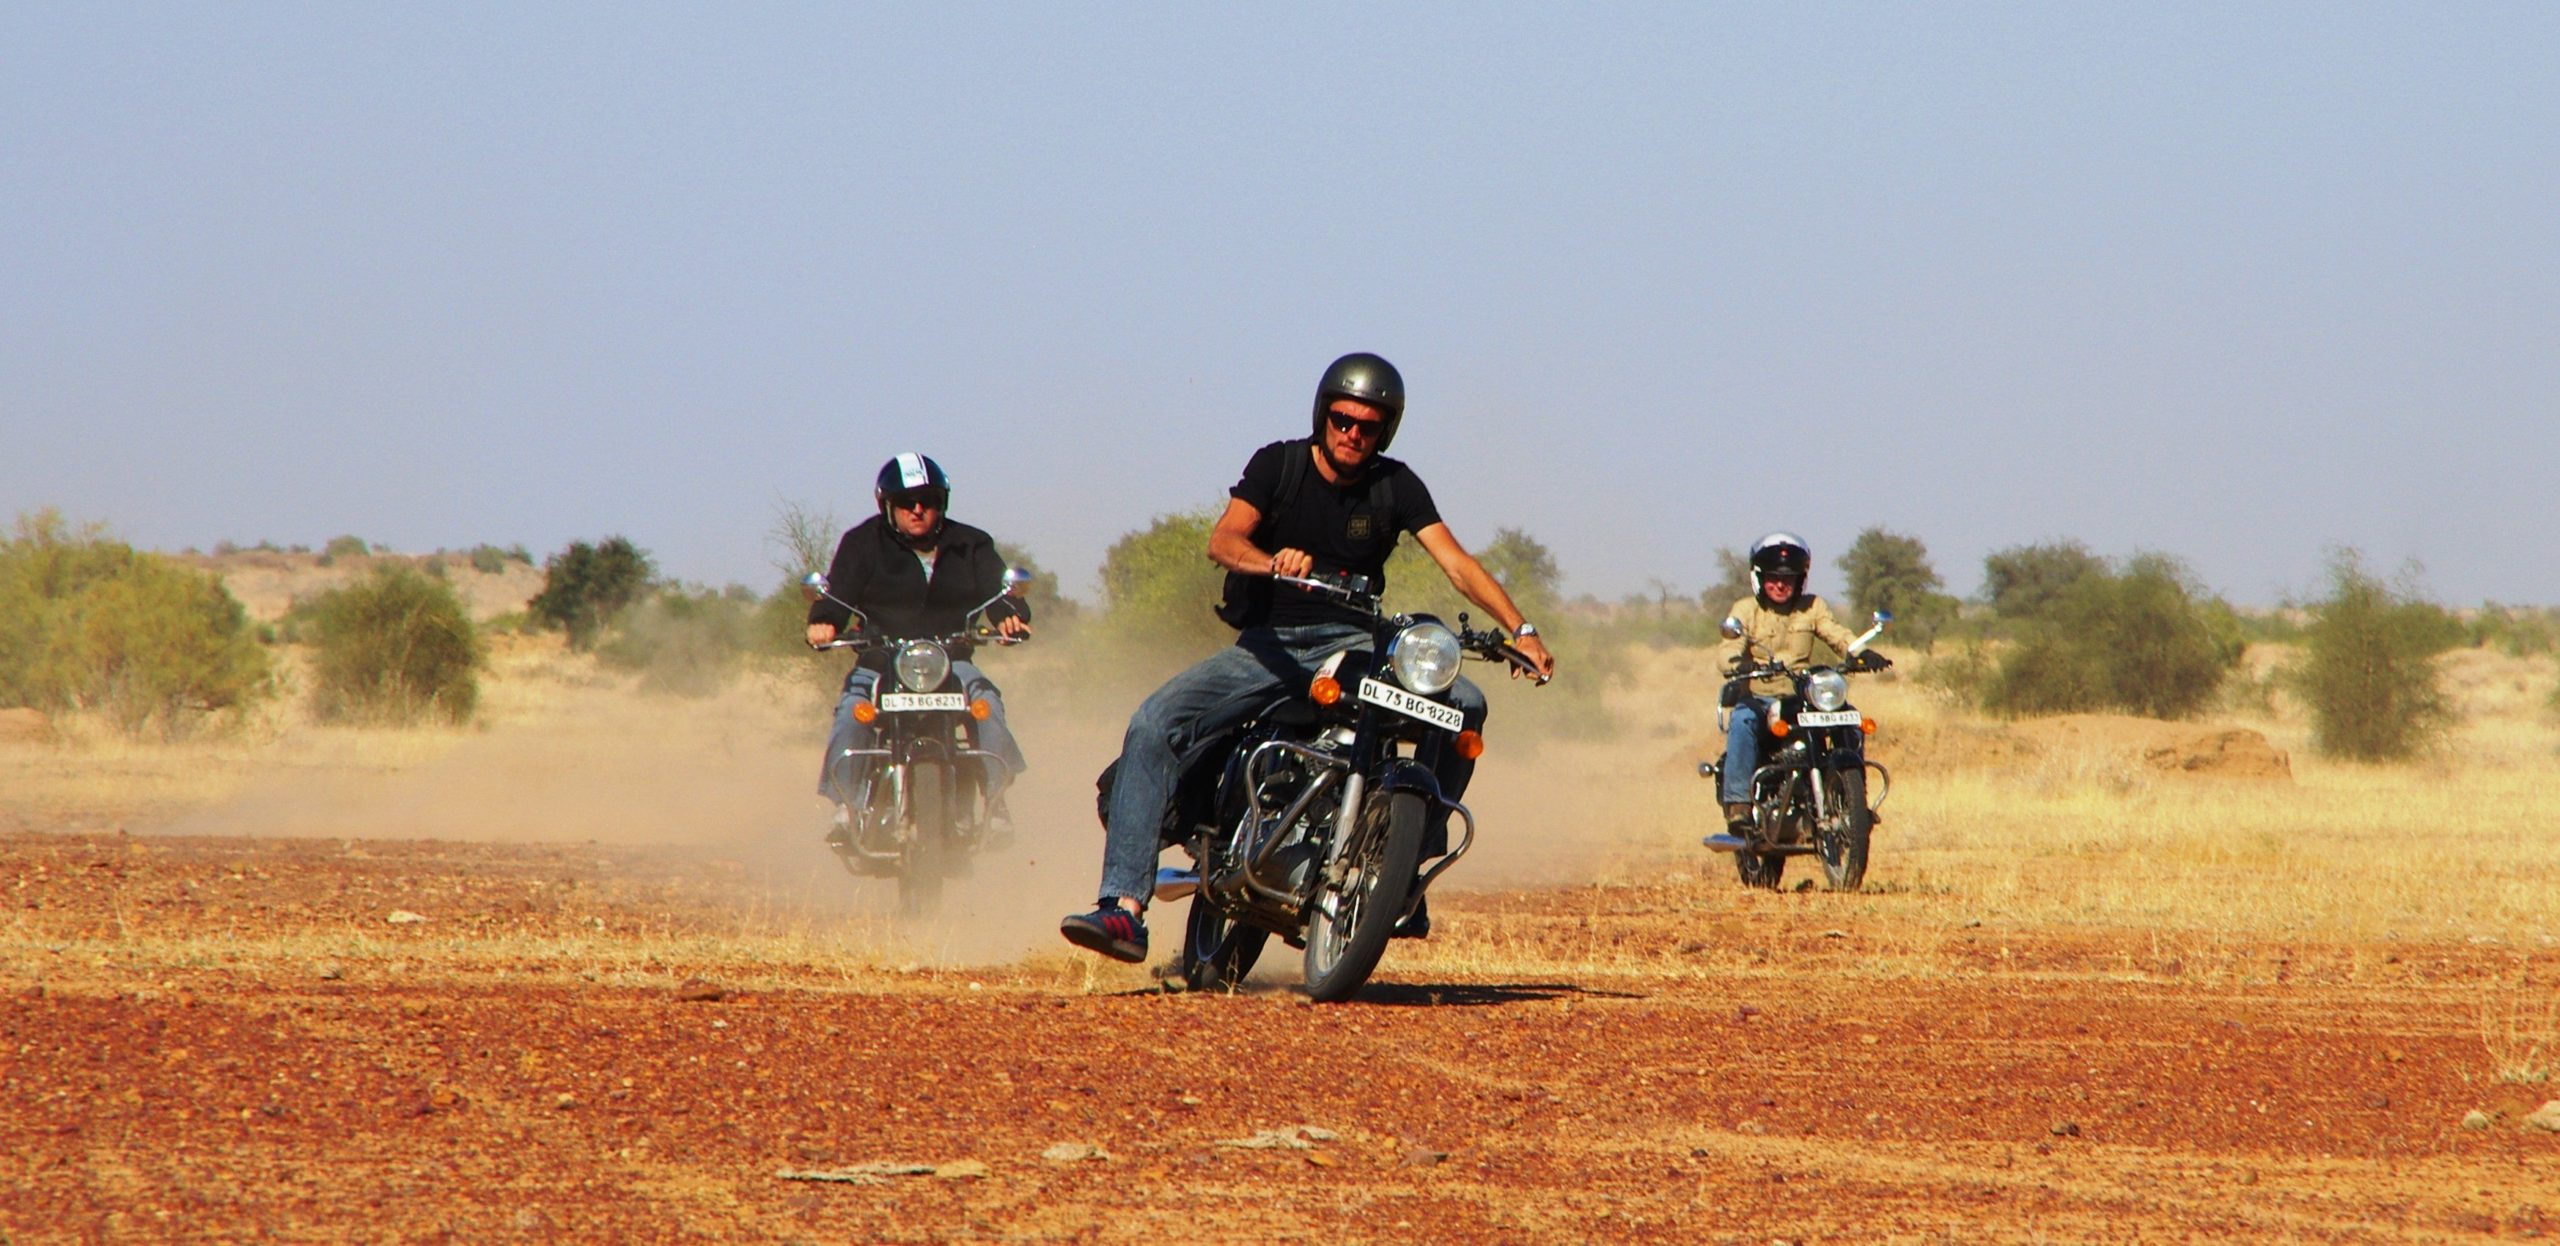 off road riding rajasthan